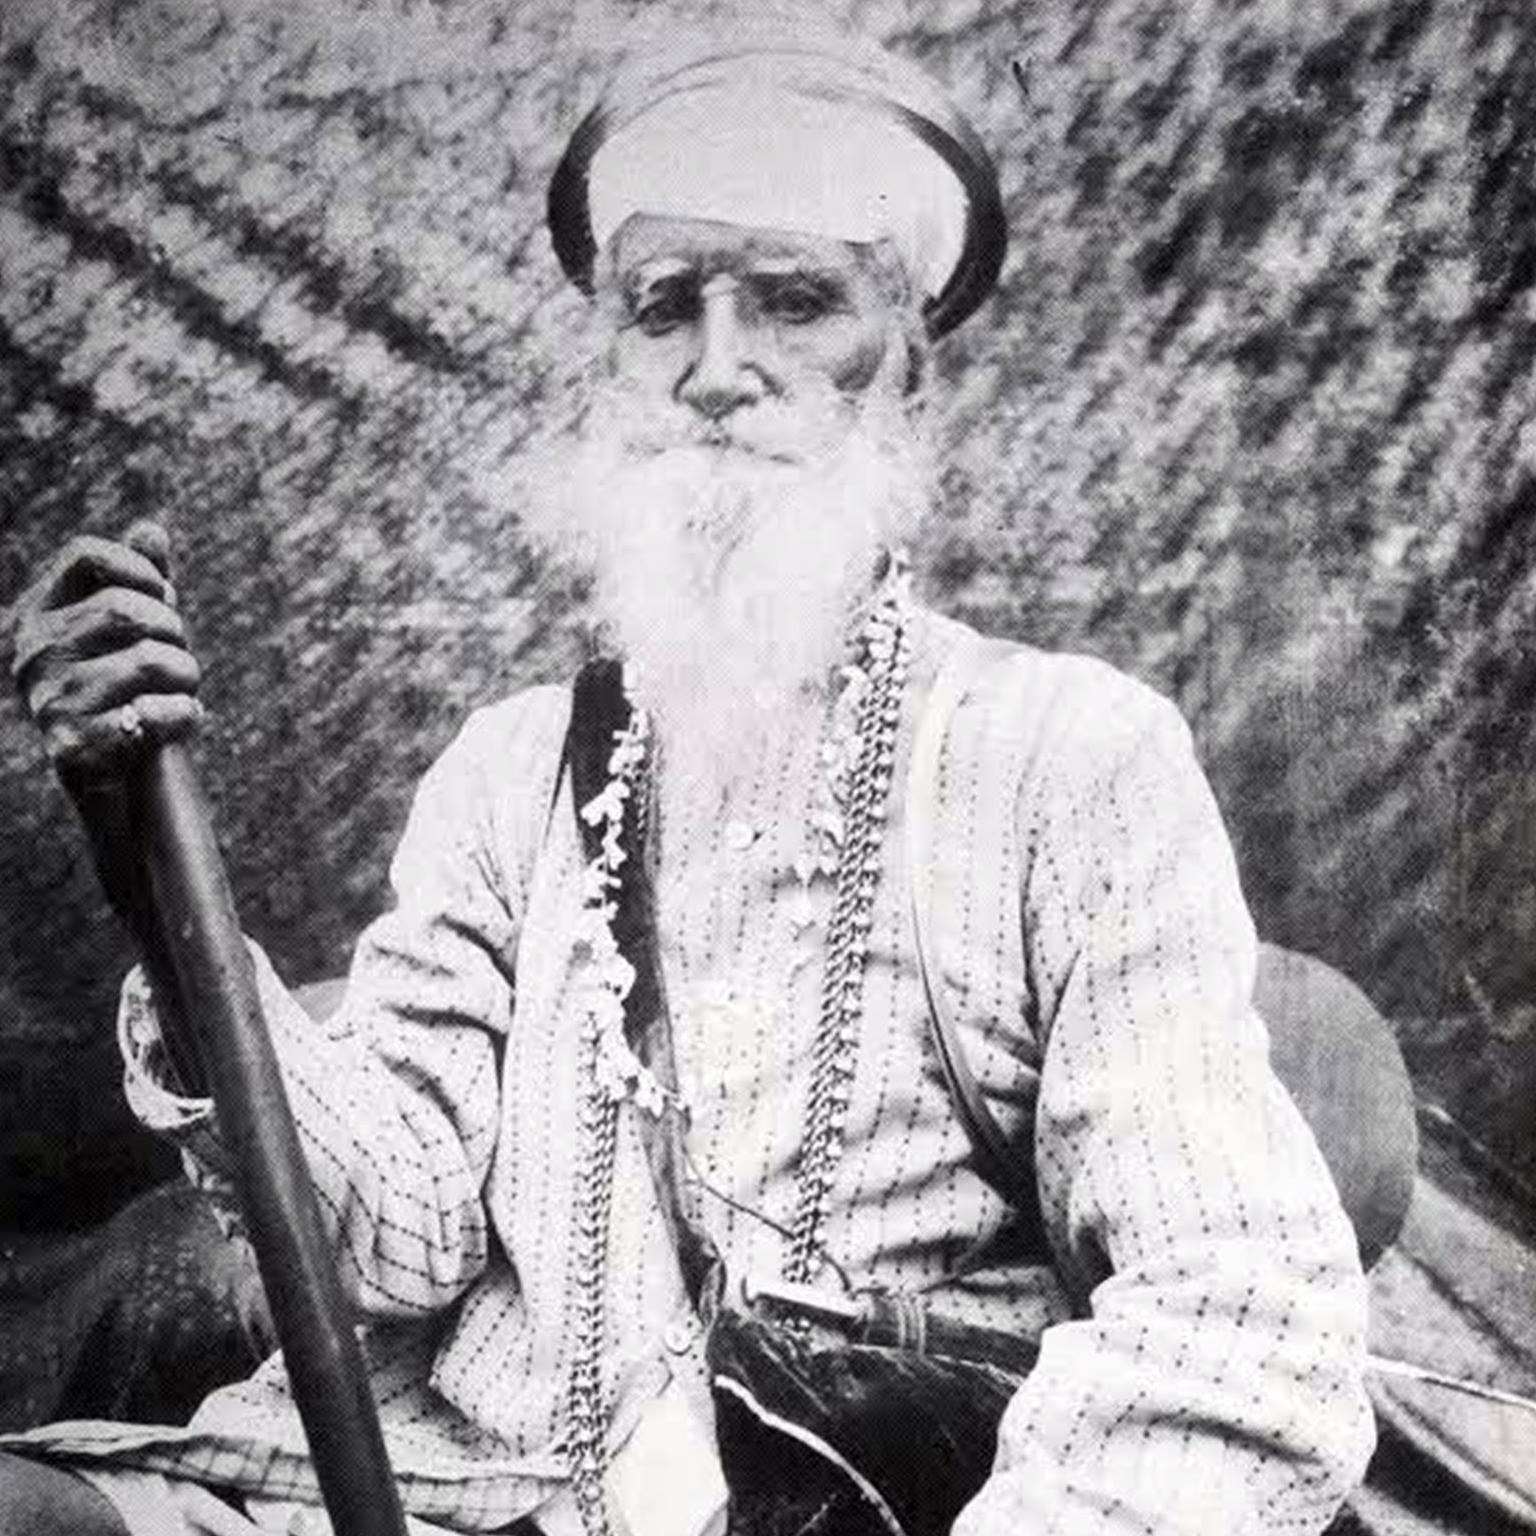 Bhai Maharaj Singh was a revolutionary leader who inspired the fight against the British for freedom and justice. Photo courtesy: sikhnet.com